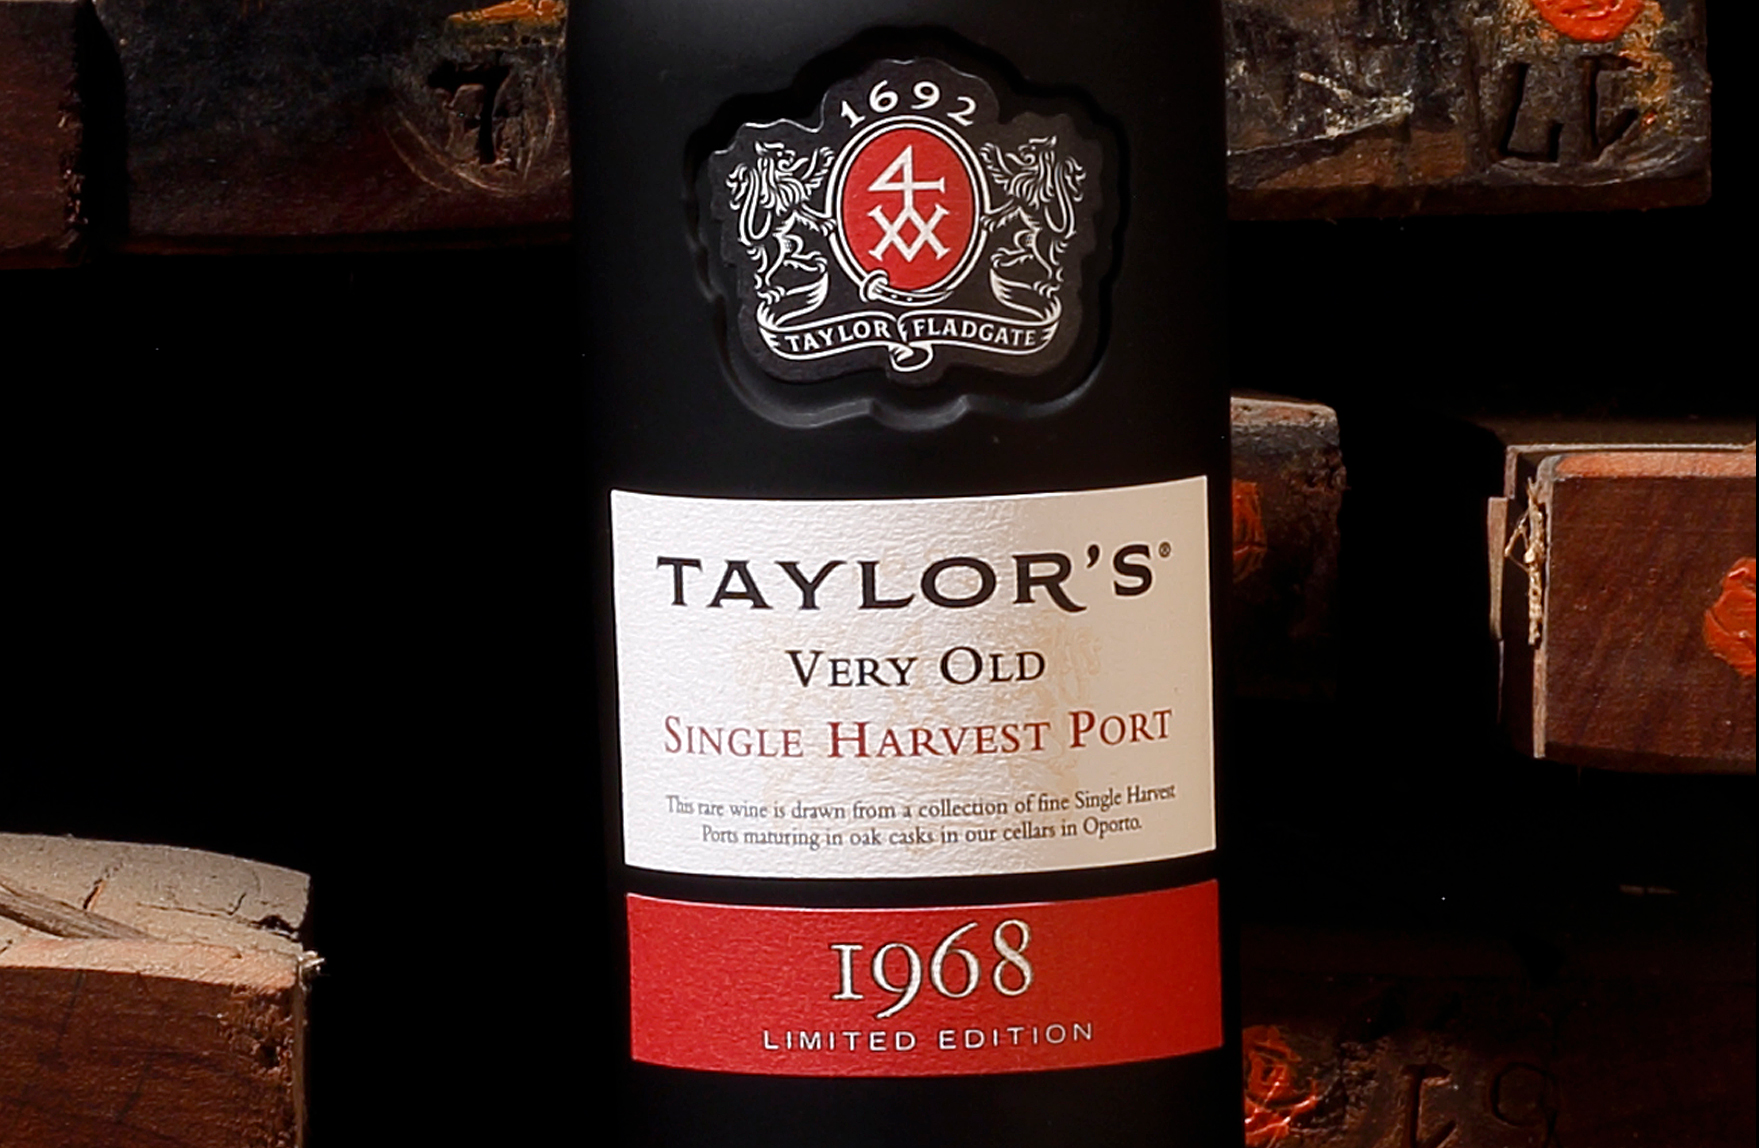 Taylor's Single Harvest Port